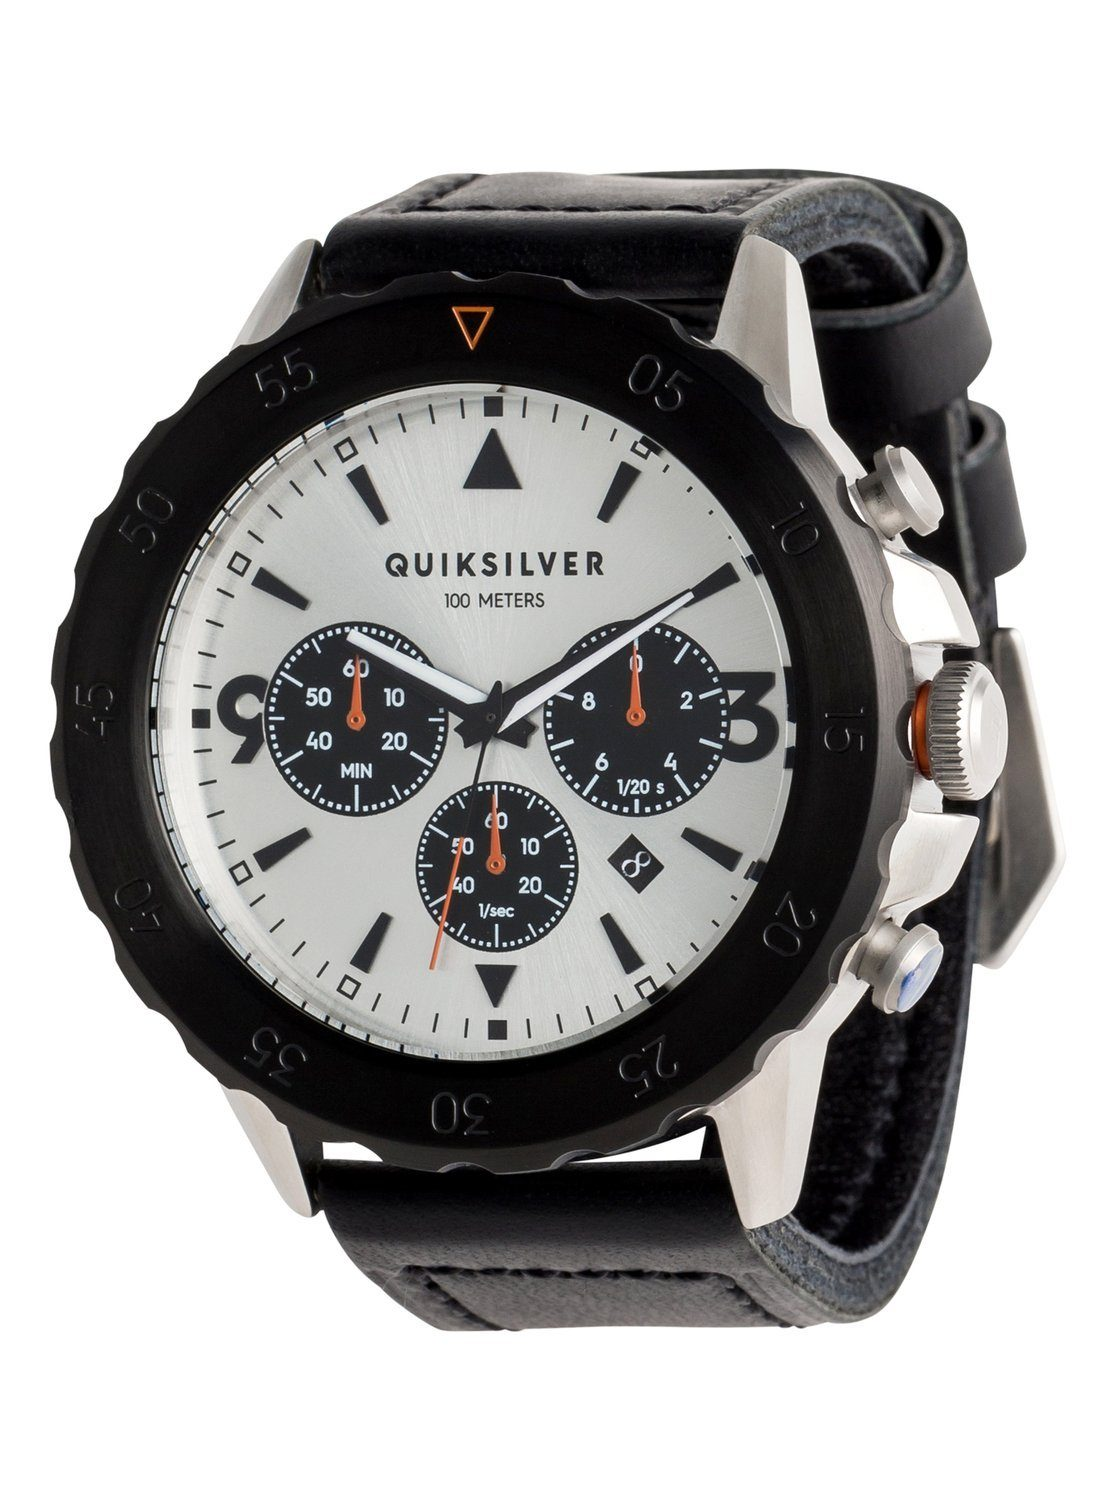 Quarzuhr »b Quiksilver 52 Leather« KaufenOtto Chrono 5AL4Rj